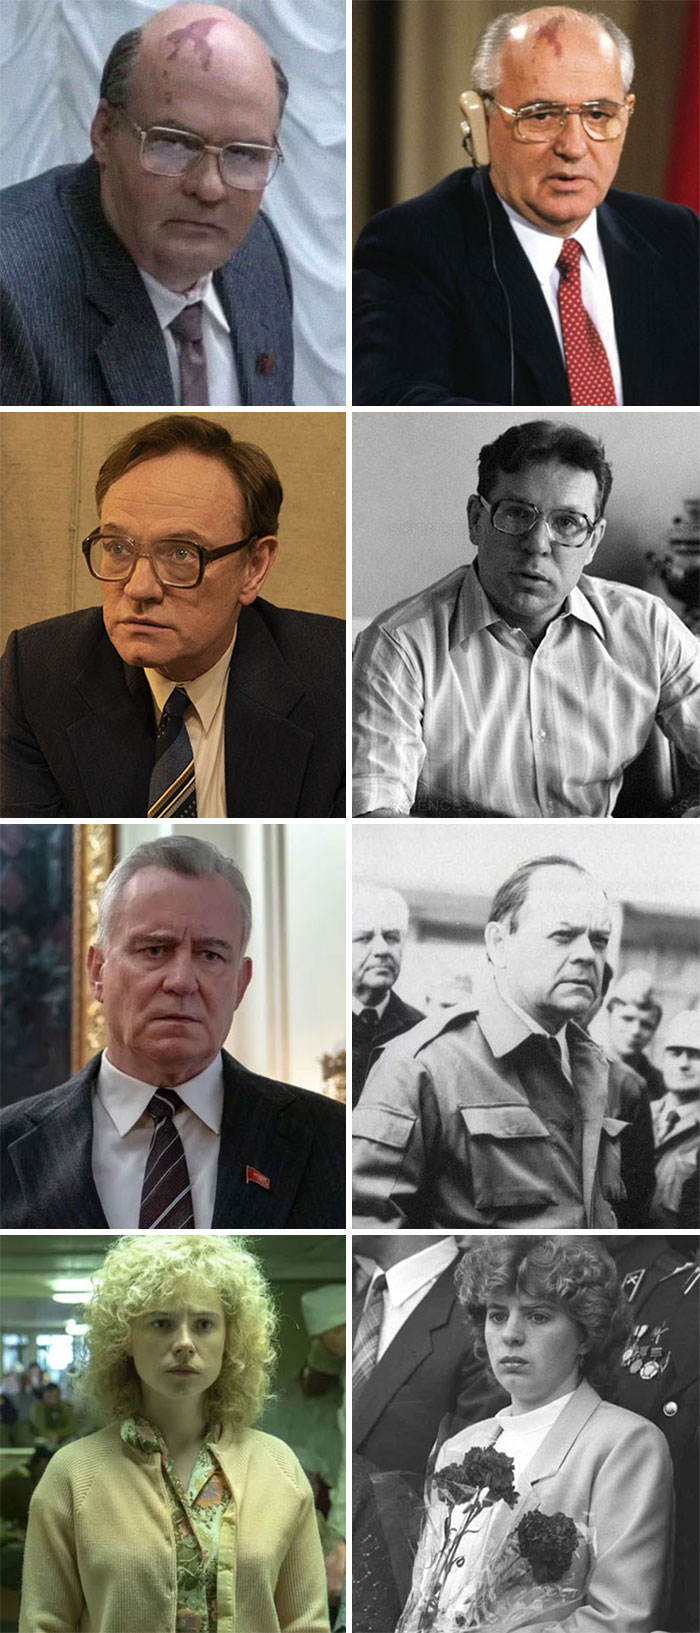 'Chernobyl' Actors vs. The Real-Life People They Played